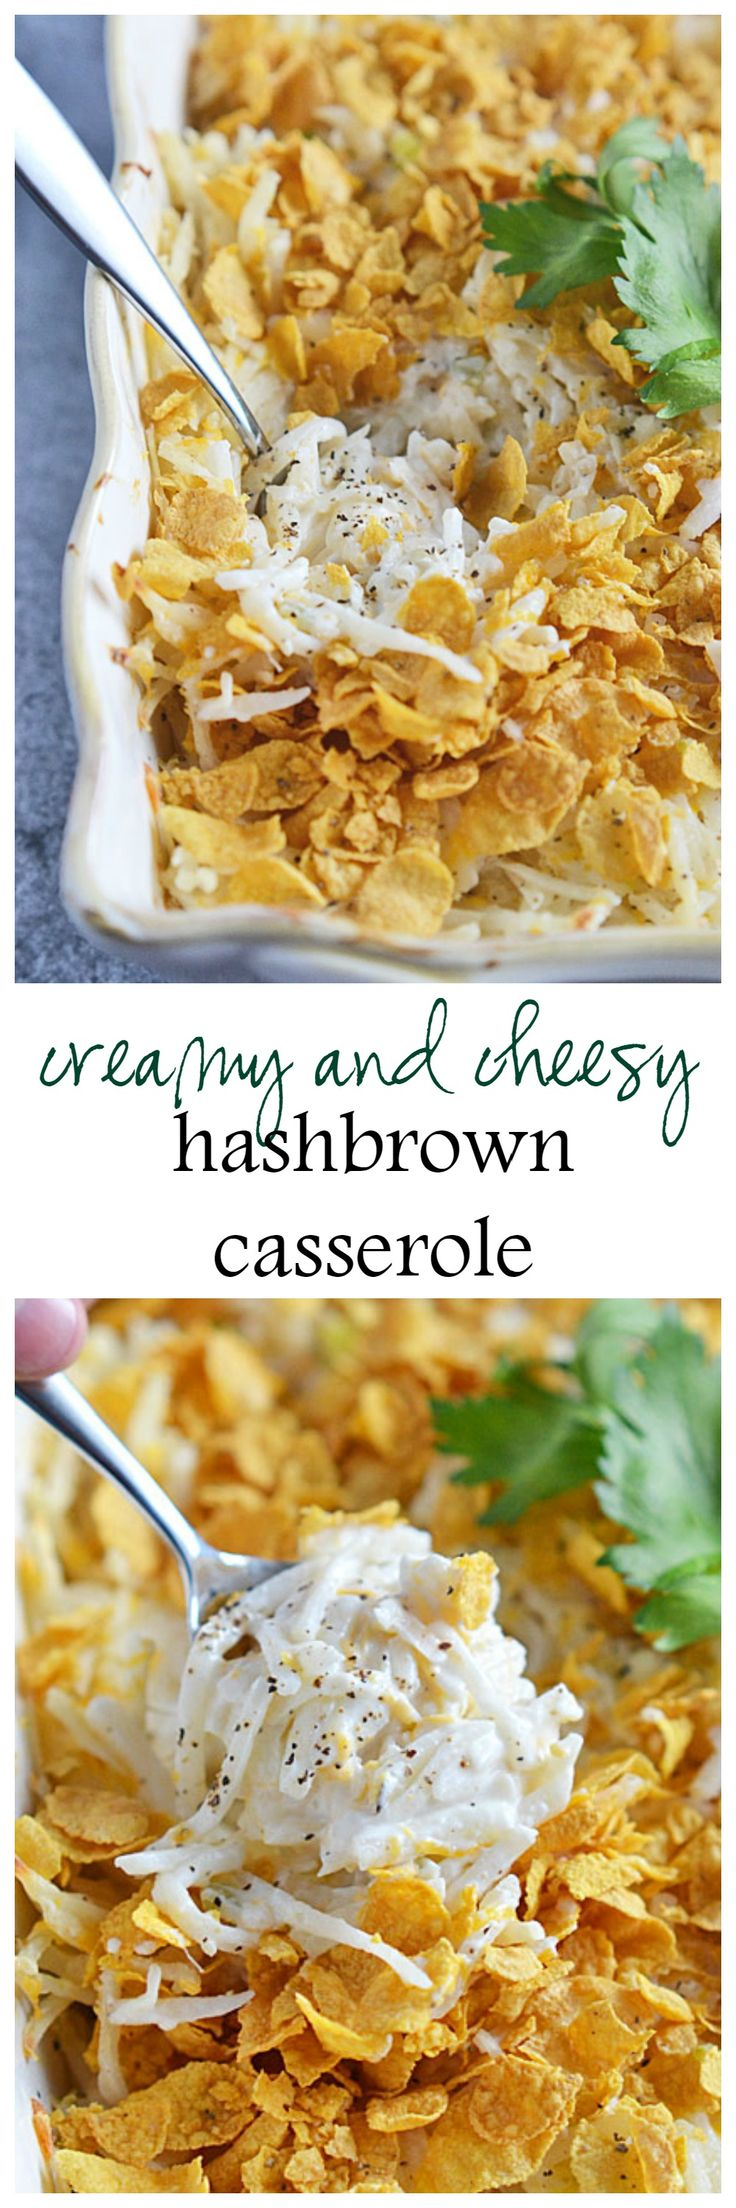 Make a traditional Creamy and Cheesy Hashbrown Casserole extra special by replacing the canned condensed celery soup with an easy homemade version!   Kitchen Meets Girl